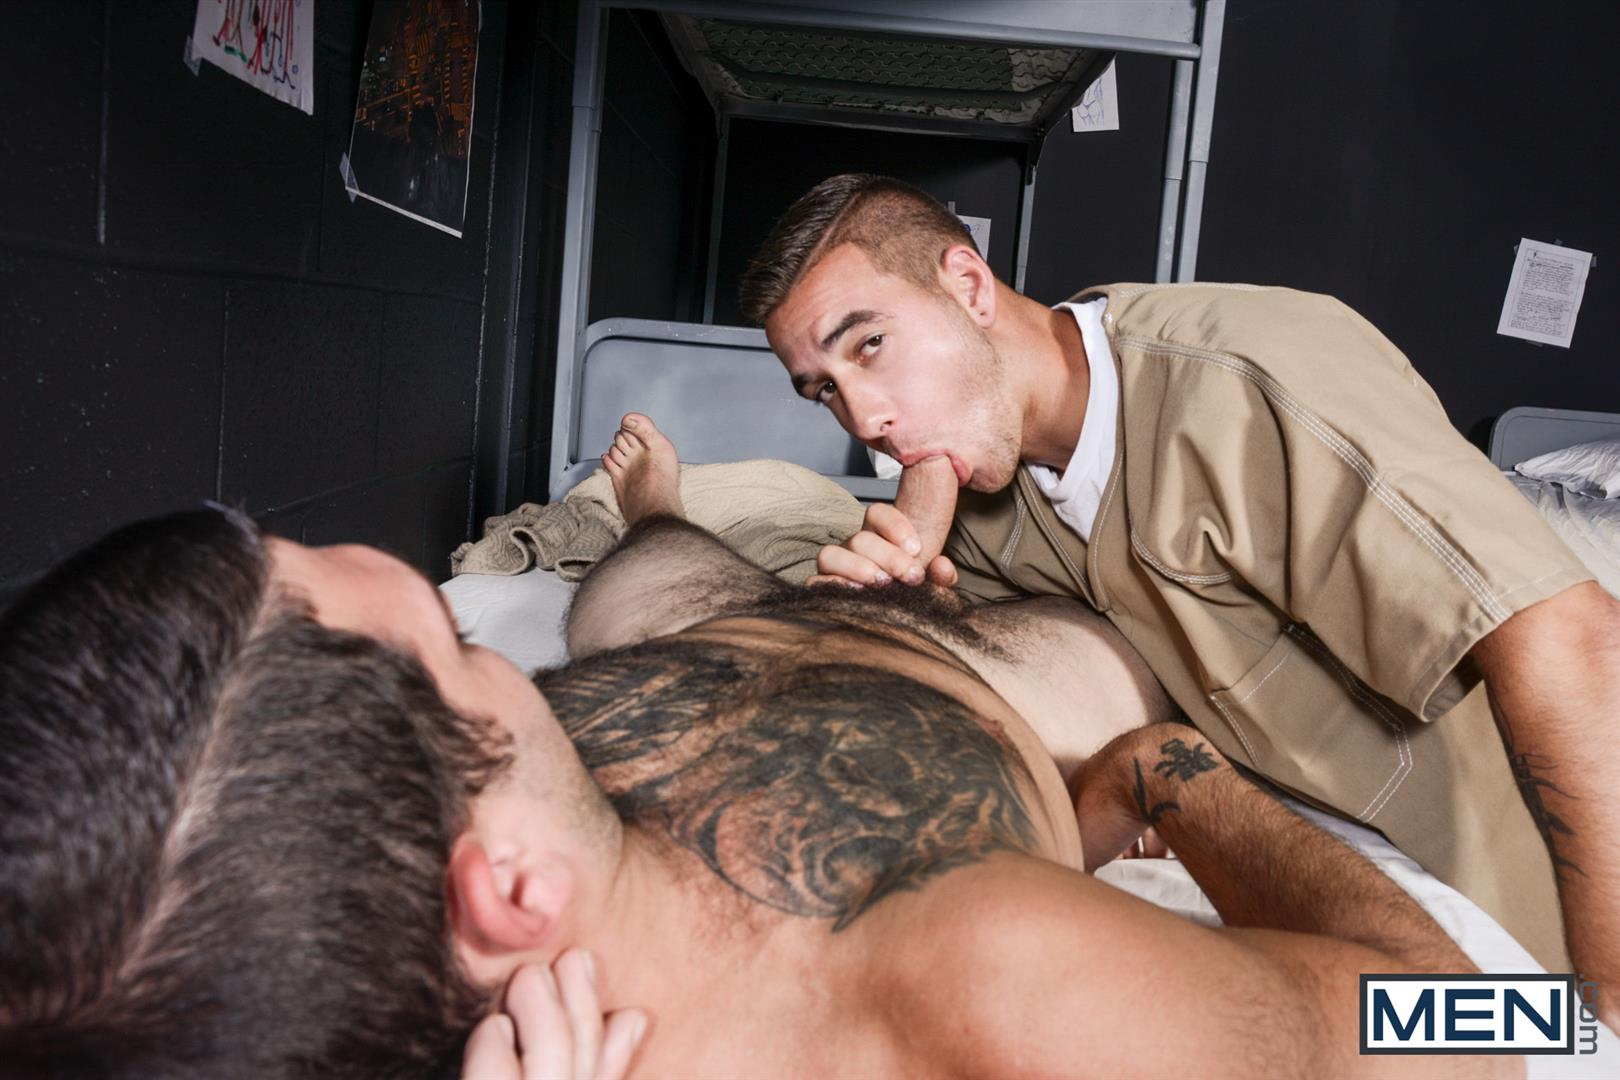 Men-Tony-Paradise-and-Dimitri-Kane-Straight-Men-Having-Sex-in-Prison-Amateur-Gay-Porn-11 Learning How To Survive In Prison By Taking Cock